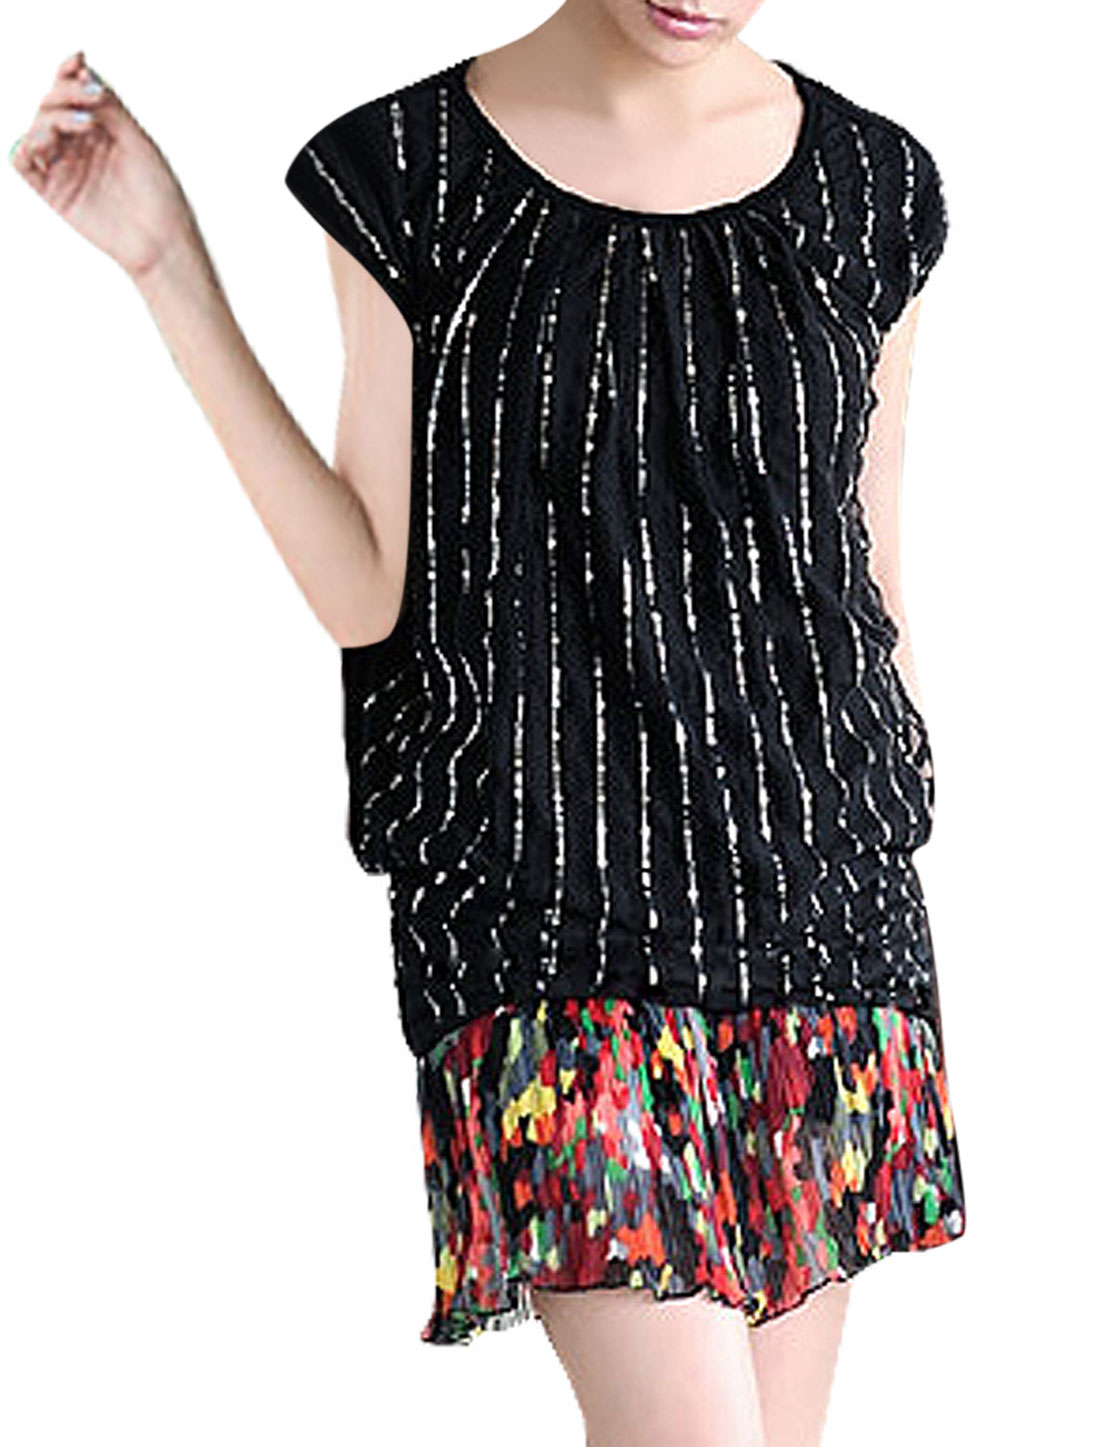 Scoop Neck Silver Tone Decor Black Shirt XS for Ladies